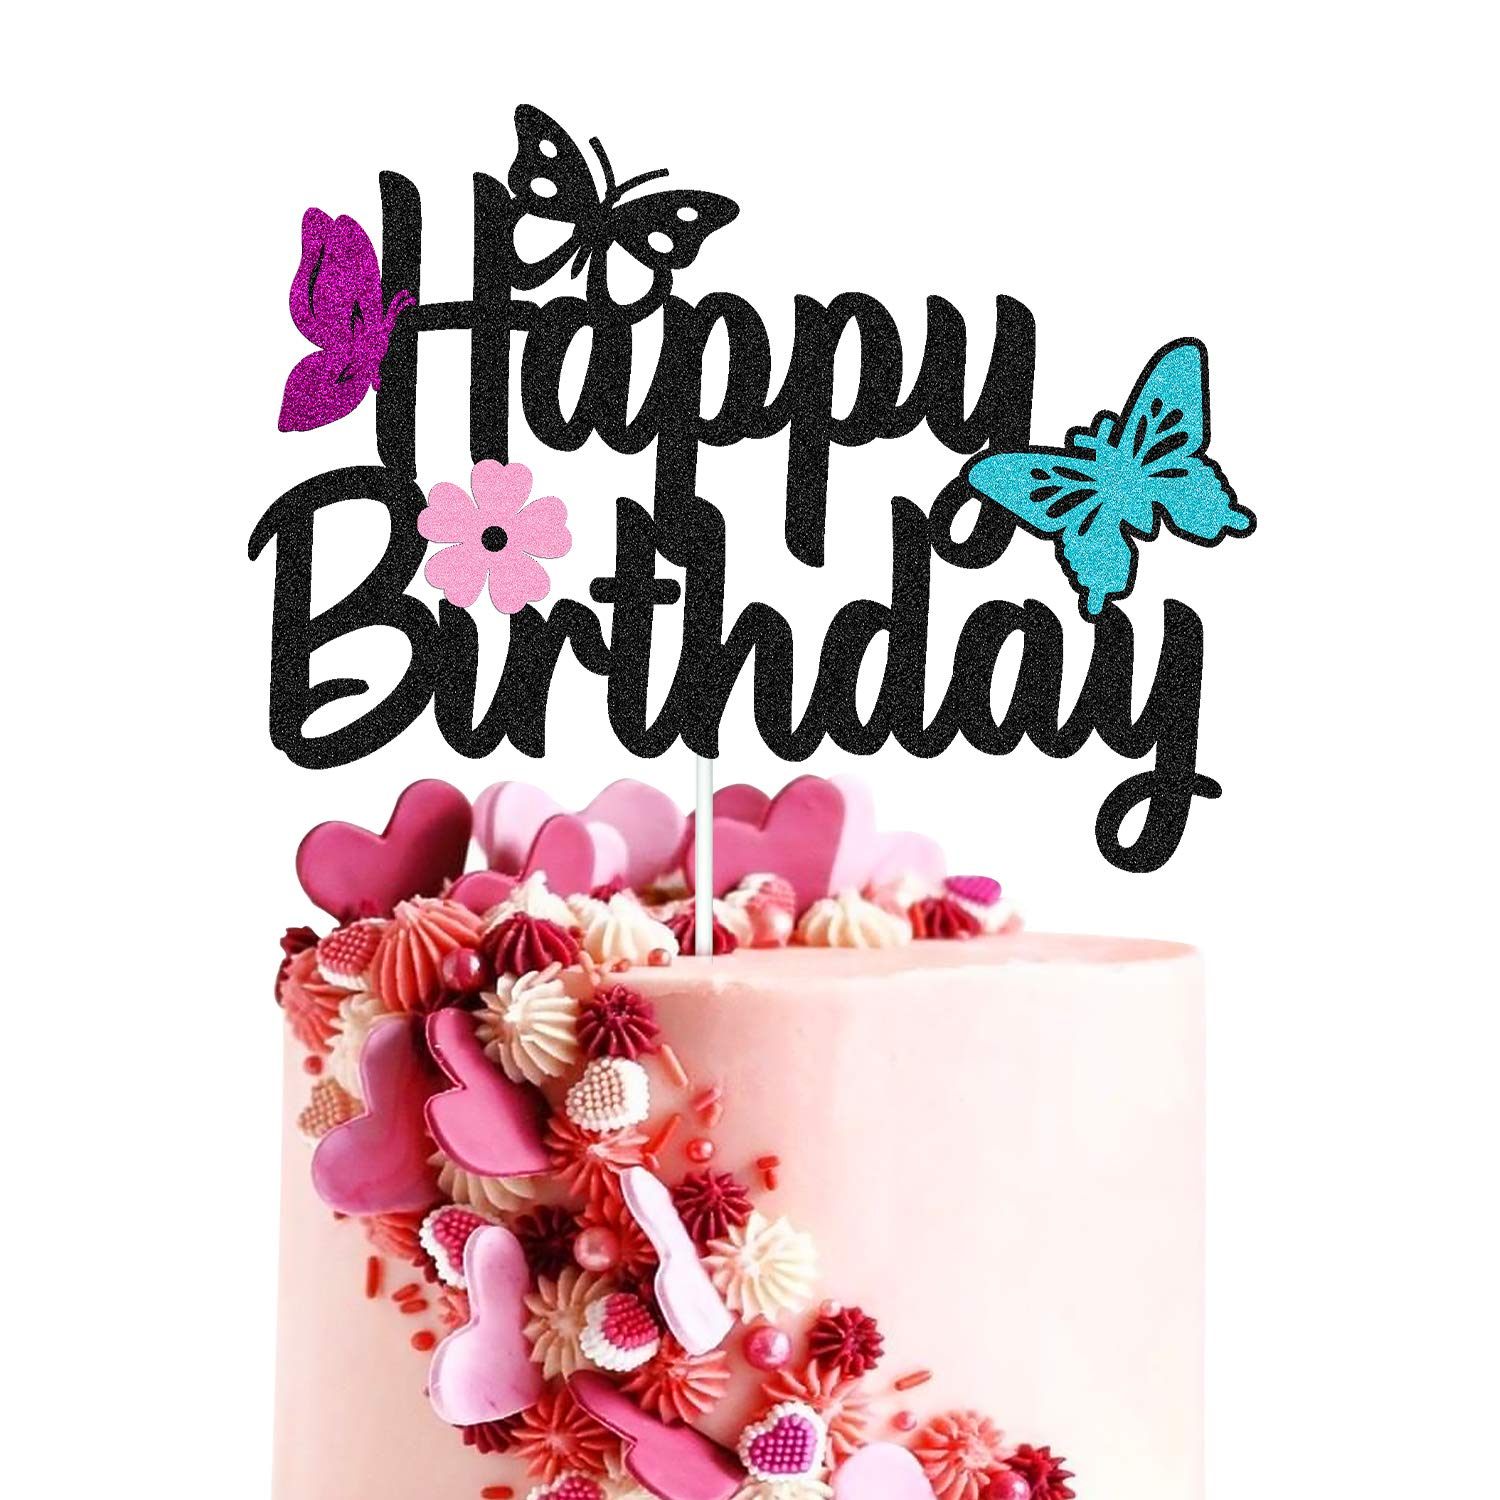 Butterfly Cake Topper Happy Birthday Sign Butterfly Silhouette Cake Decorations for Baby Boy Girl Birthday Party Supplies Double Sided Black Sparkle Decor (Black)